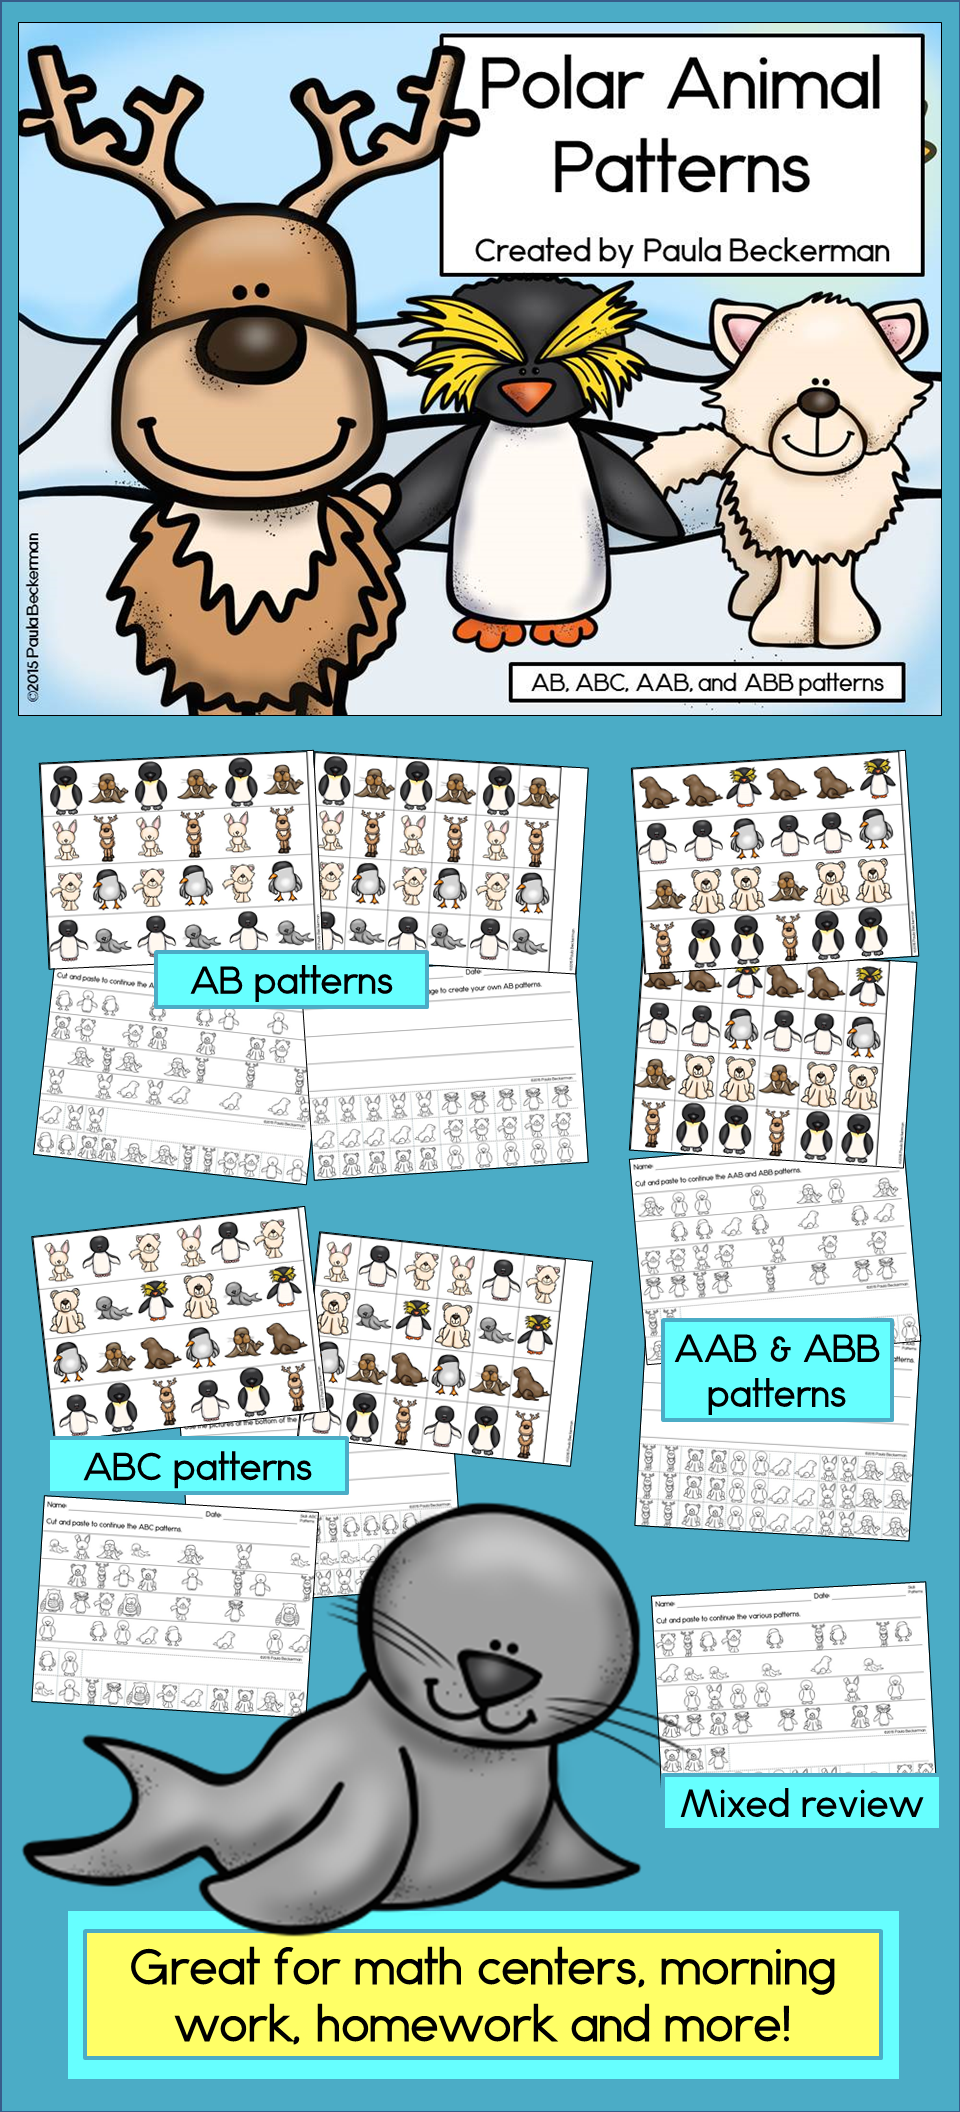 Polar Animal Patterns Math Center with AB, ABC, AAB & ABB patterns ...